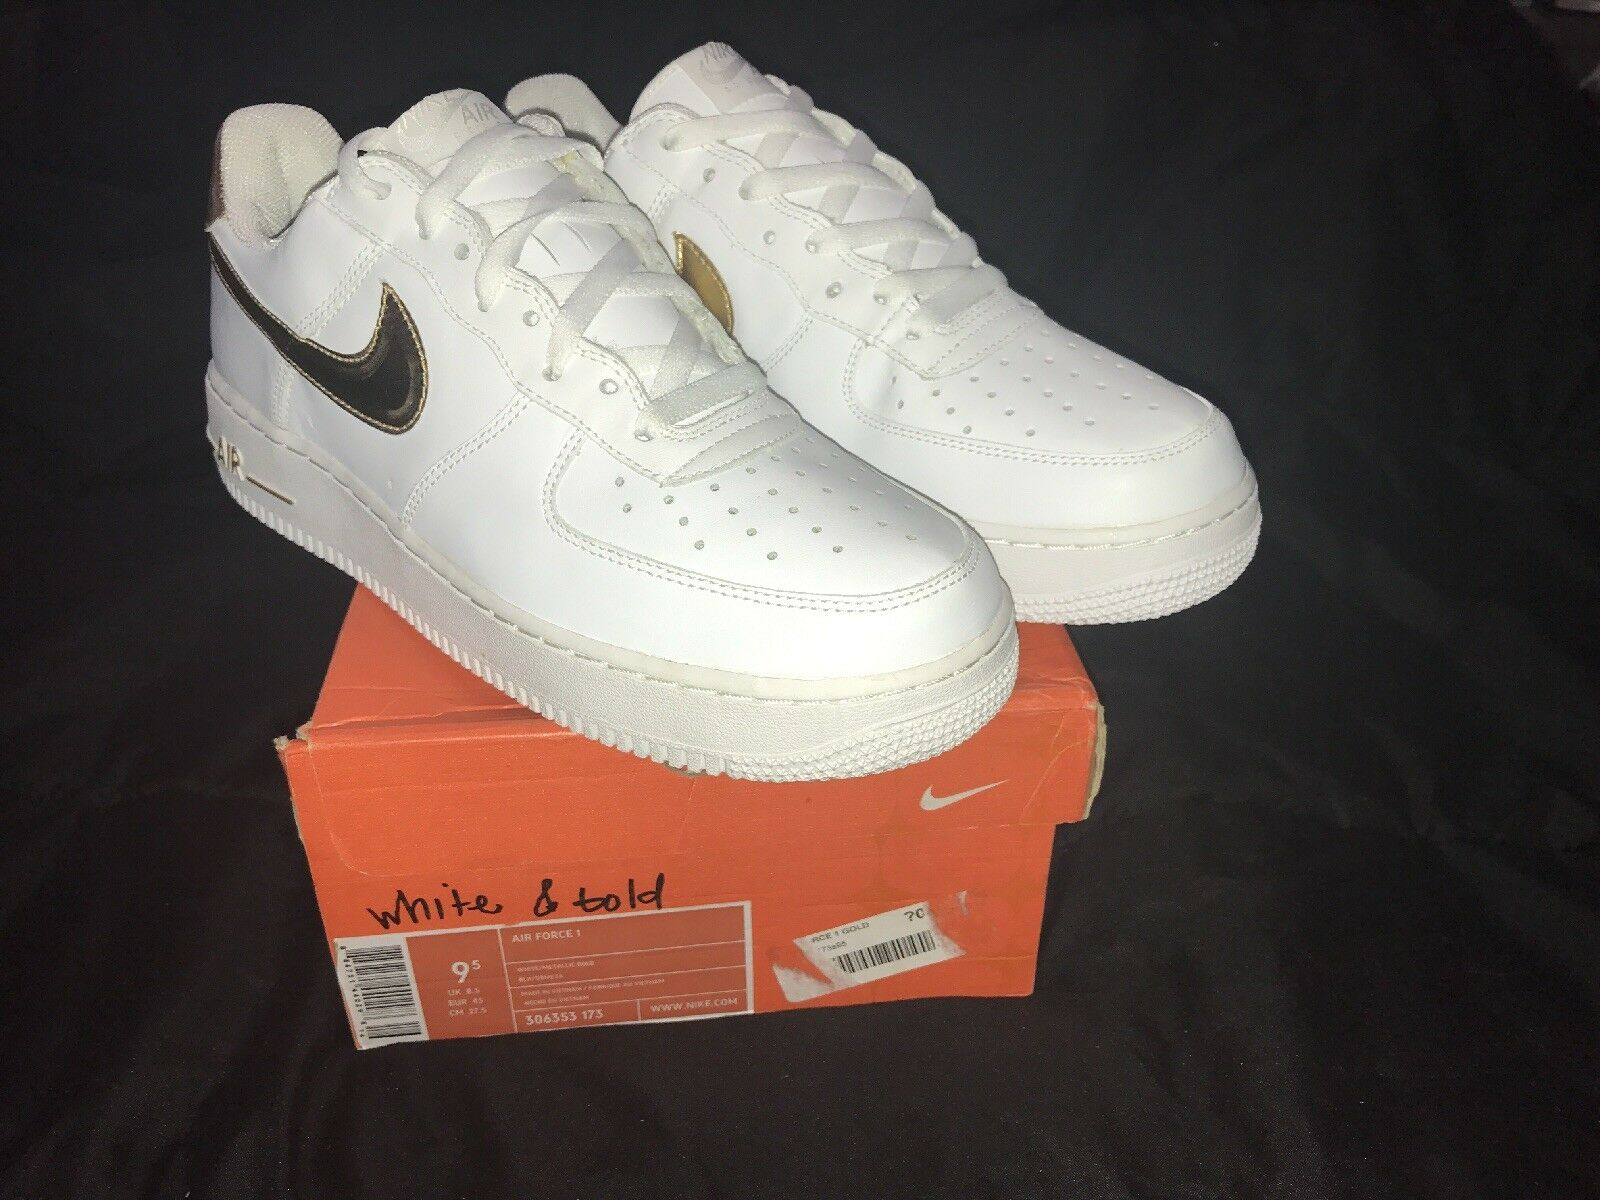 Nike air force 1 bianca / oro metallico Uomo sz 306353 173